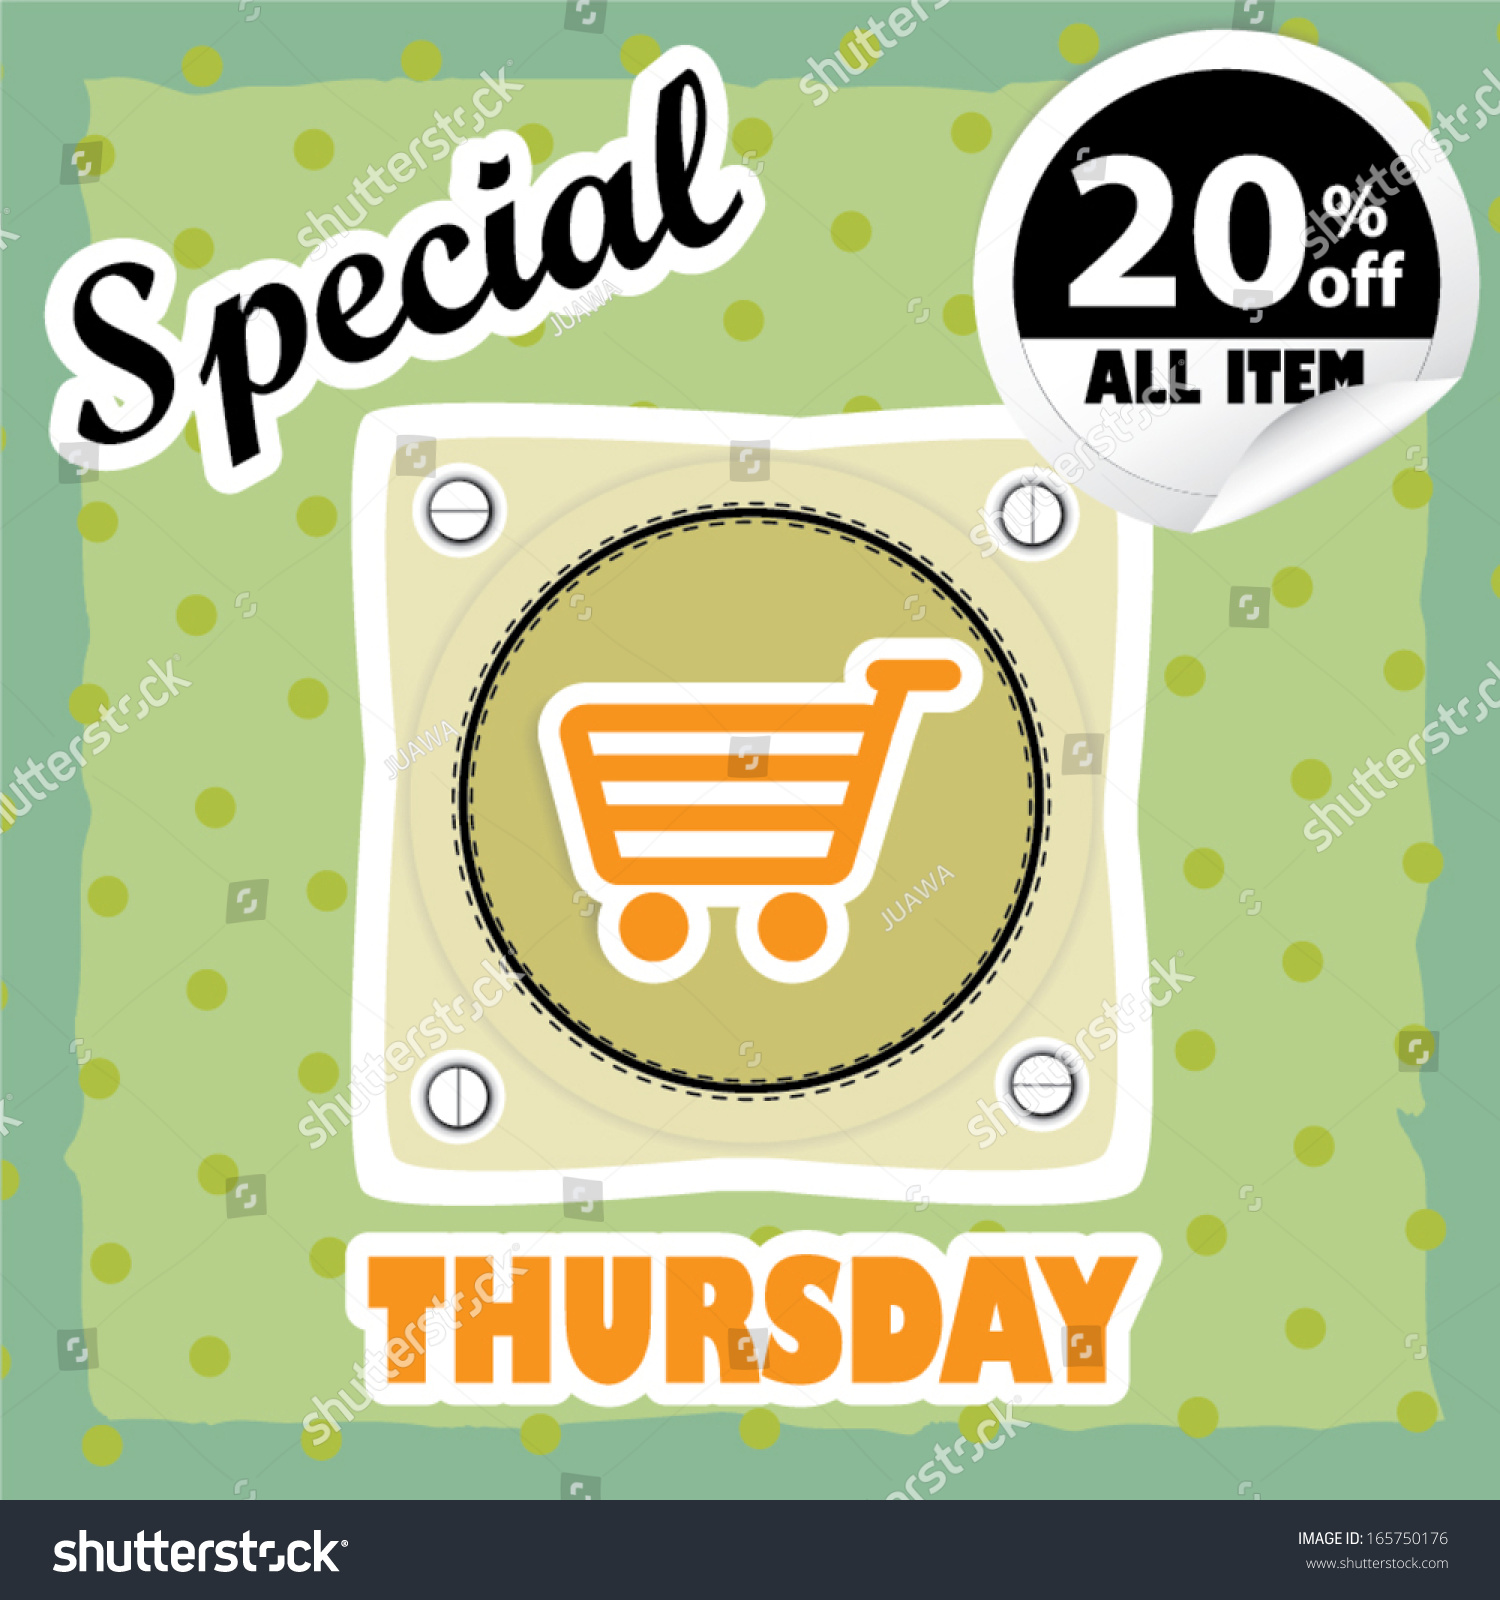 Special Thursday Sales Label Eps 10 Stock Vector Royalty Free 165750176